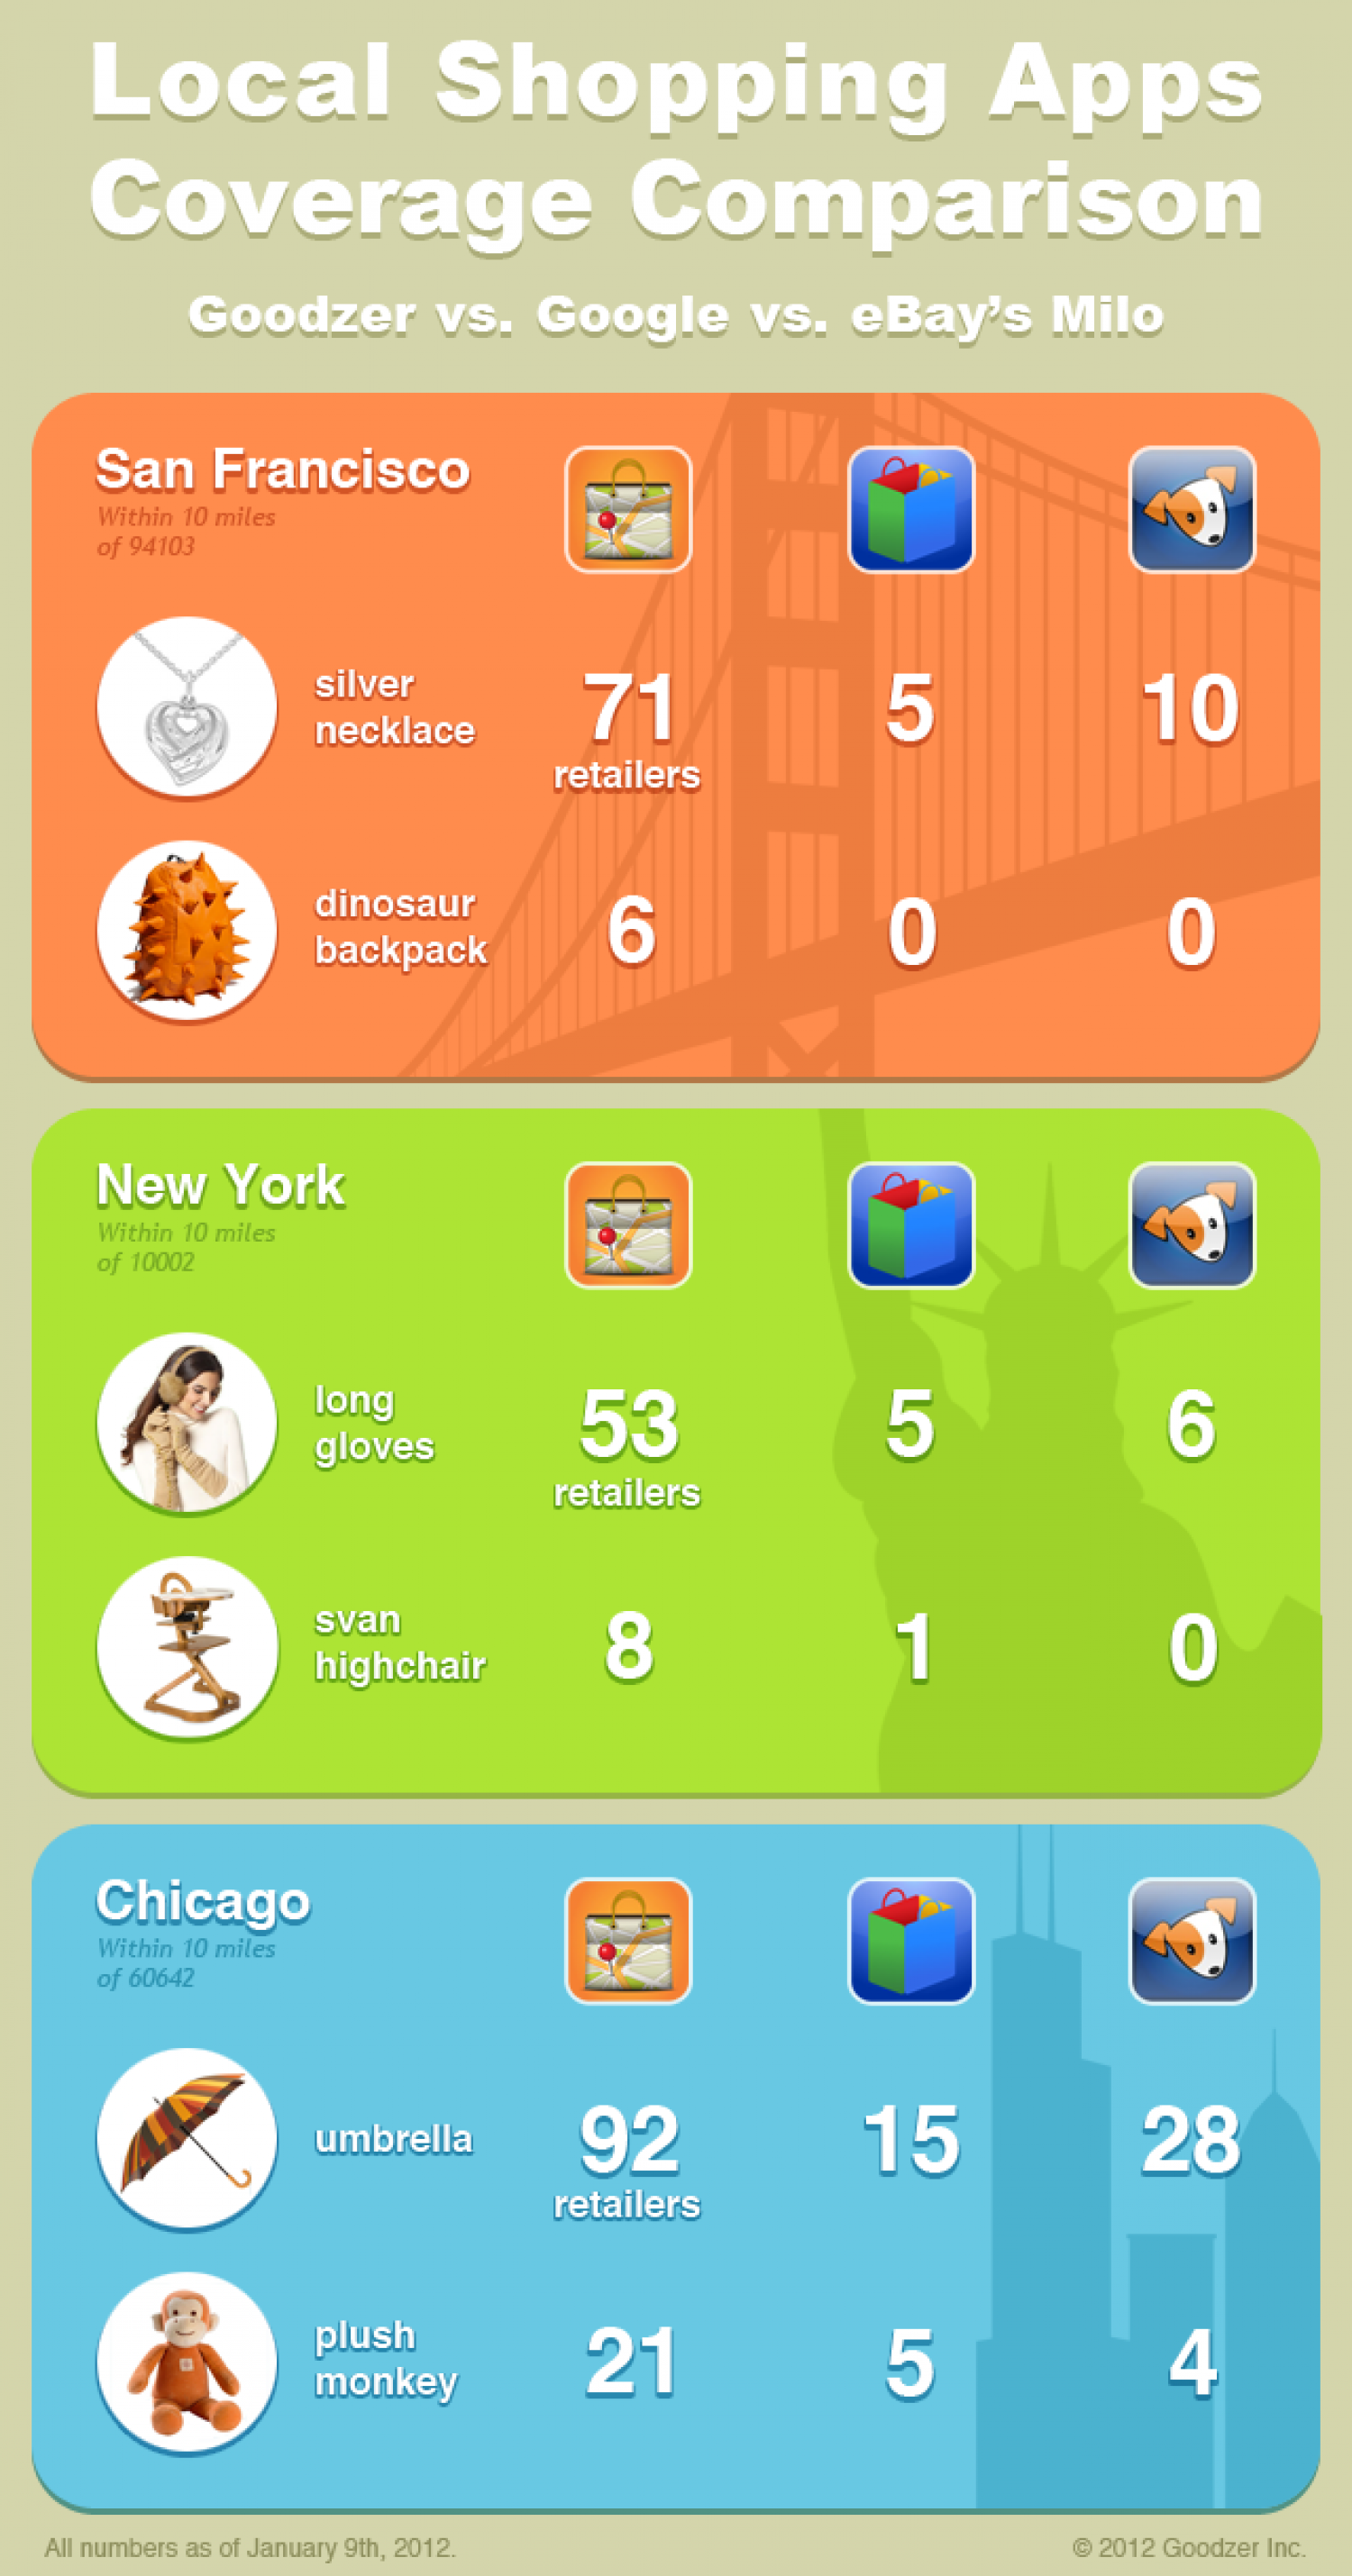 Local Shopping Apps Coverage Comparison Infographic